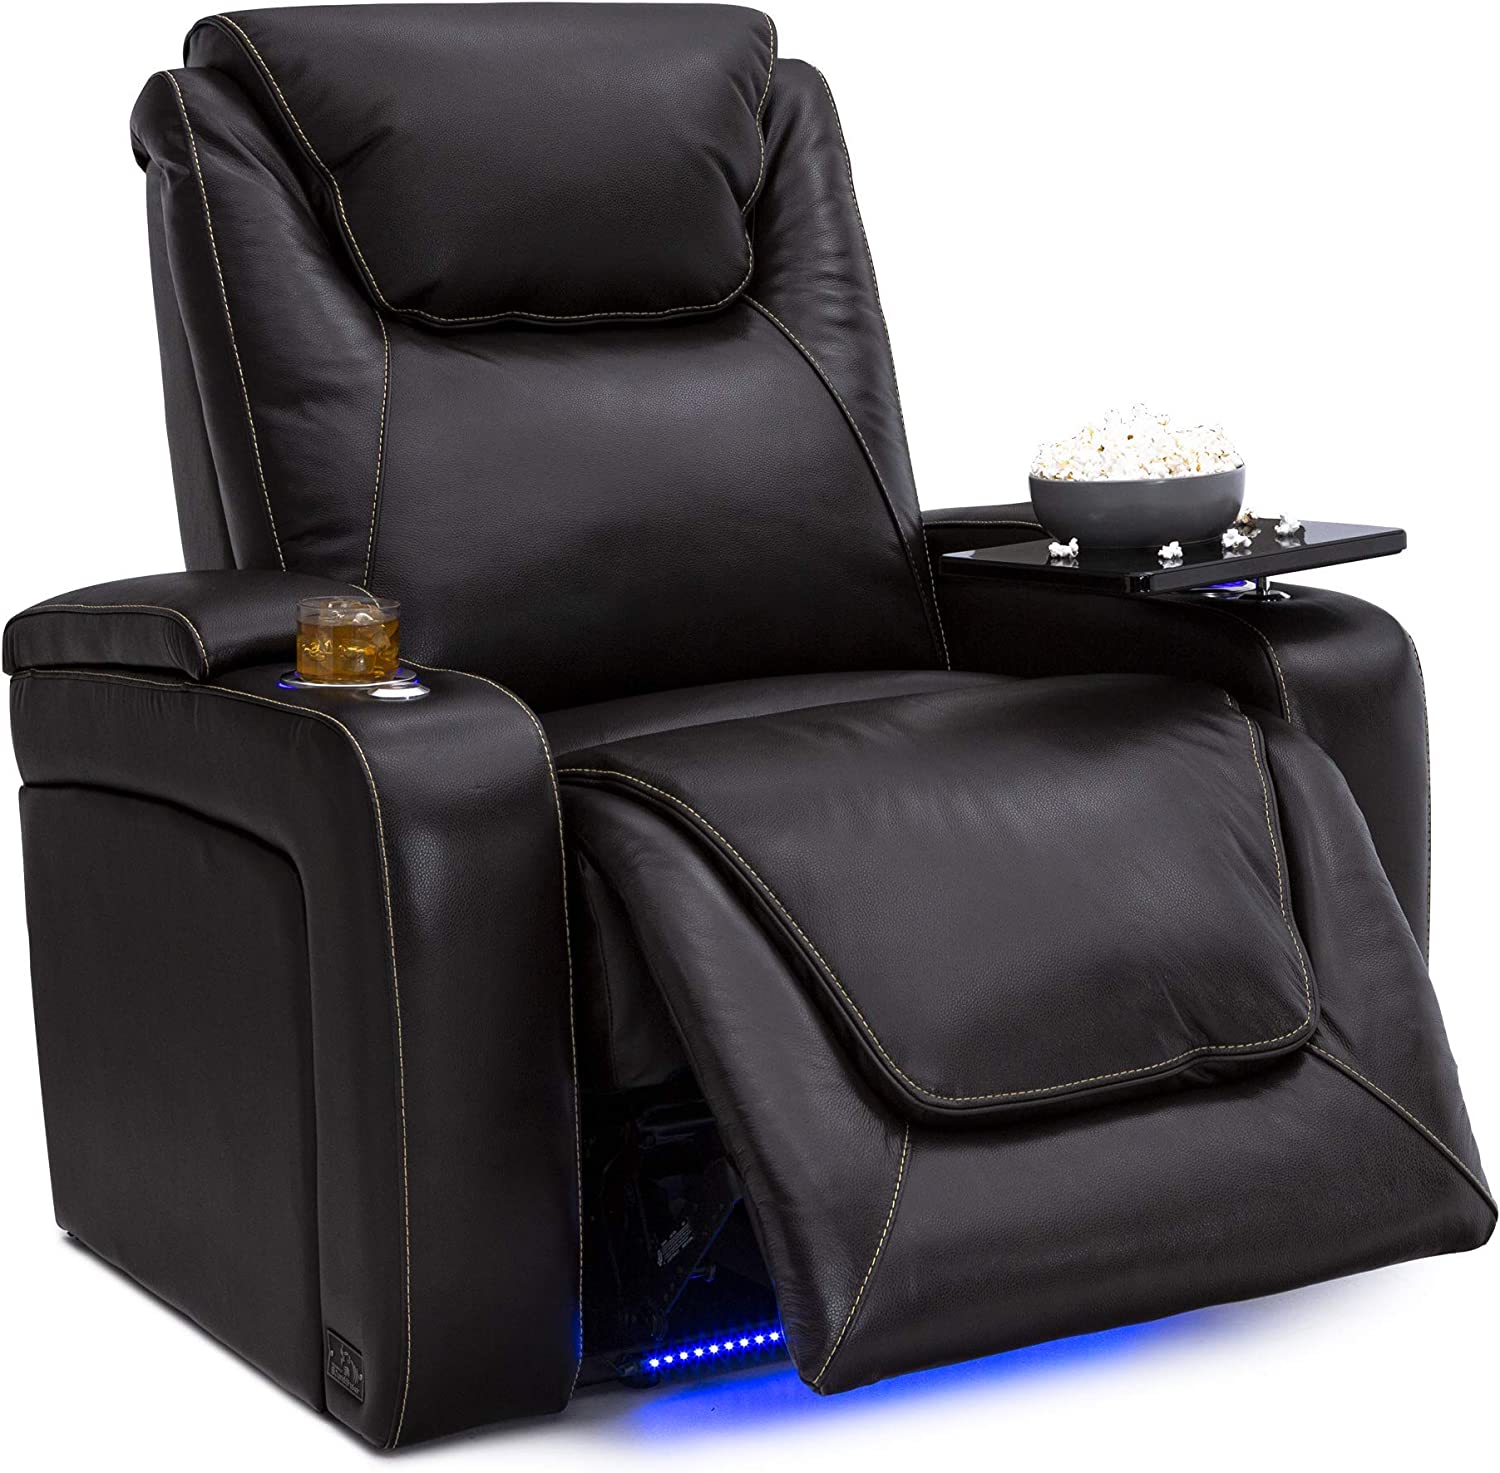 Big & Tall Home Theater Seating - Top Grain Leather - Power Recline - Powered Headrest - Power Lumbar - SoundShaker - 400 lbs Capacity (Single Recliner, Brown)